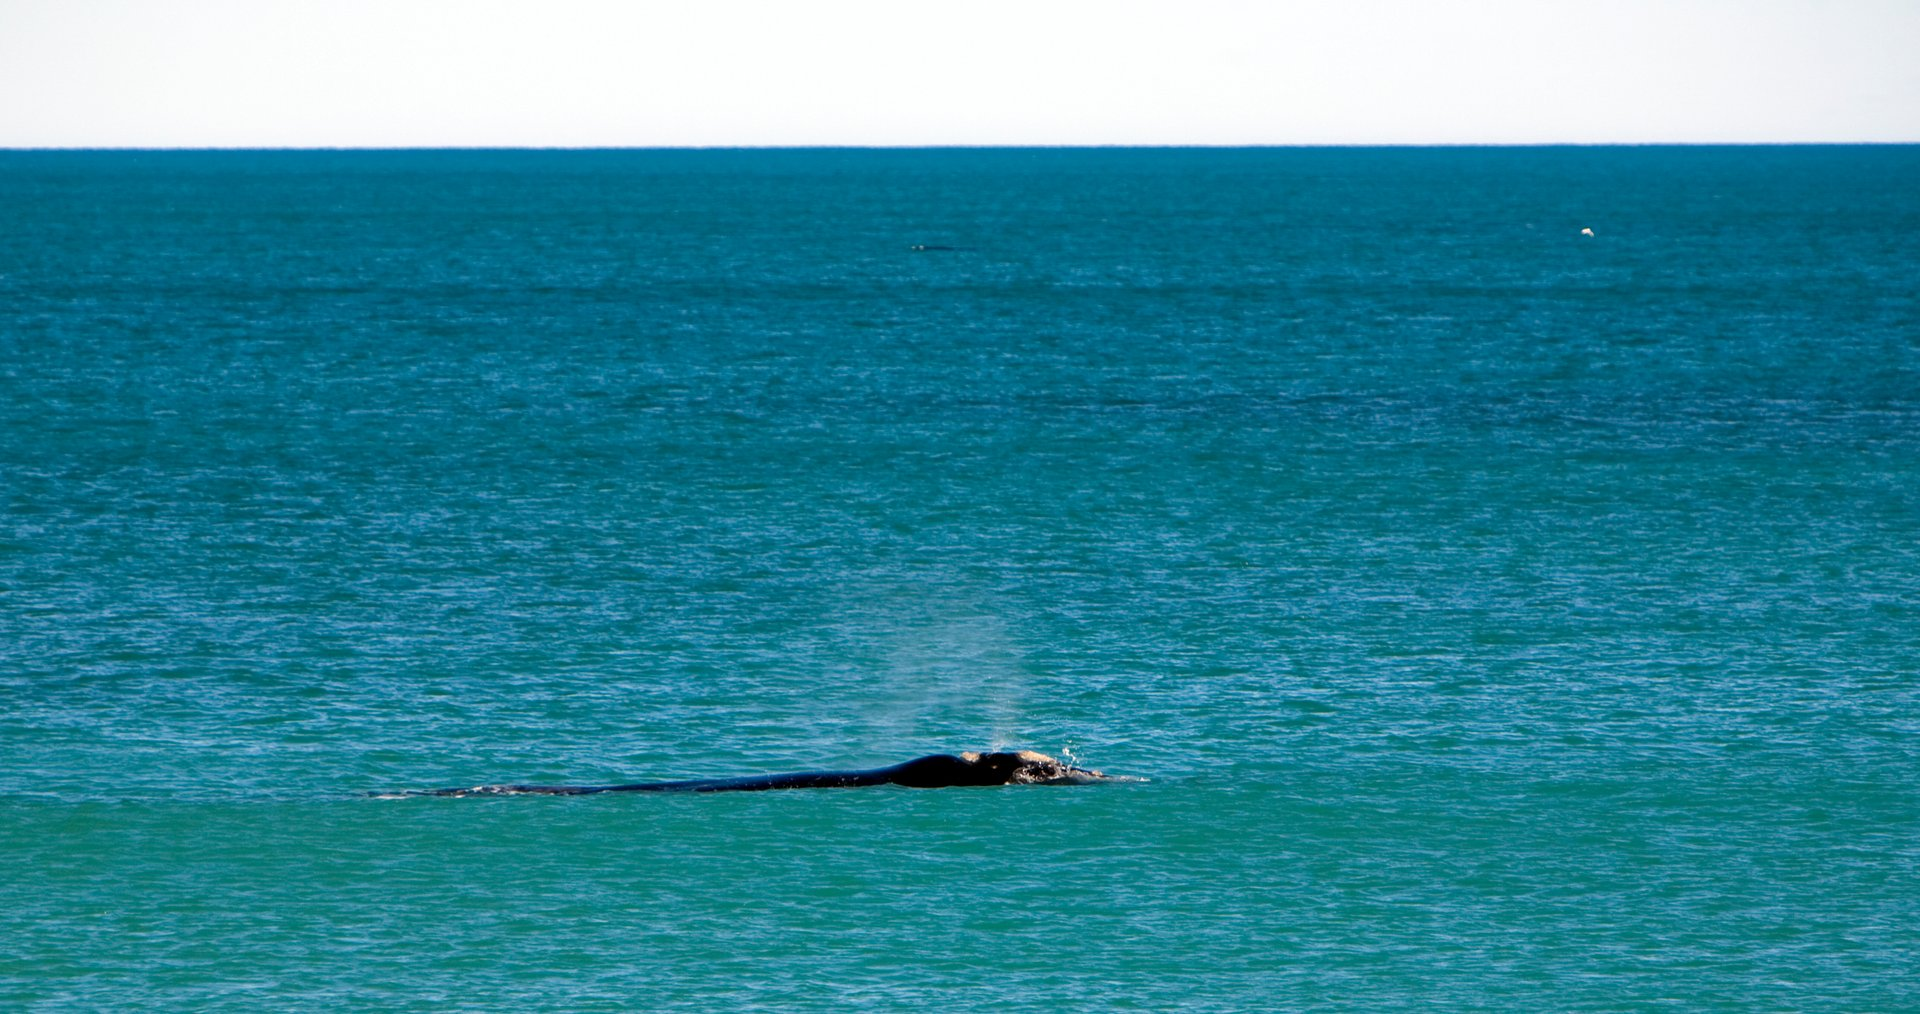 Whale Watching in South Australia 2020 - Best Time